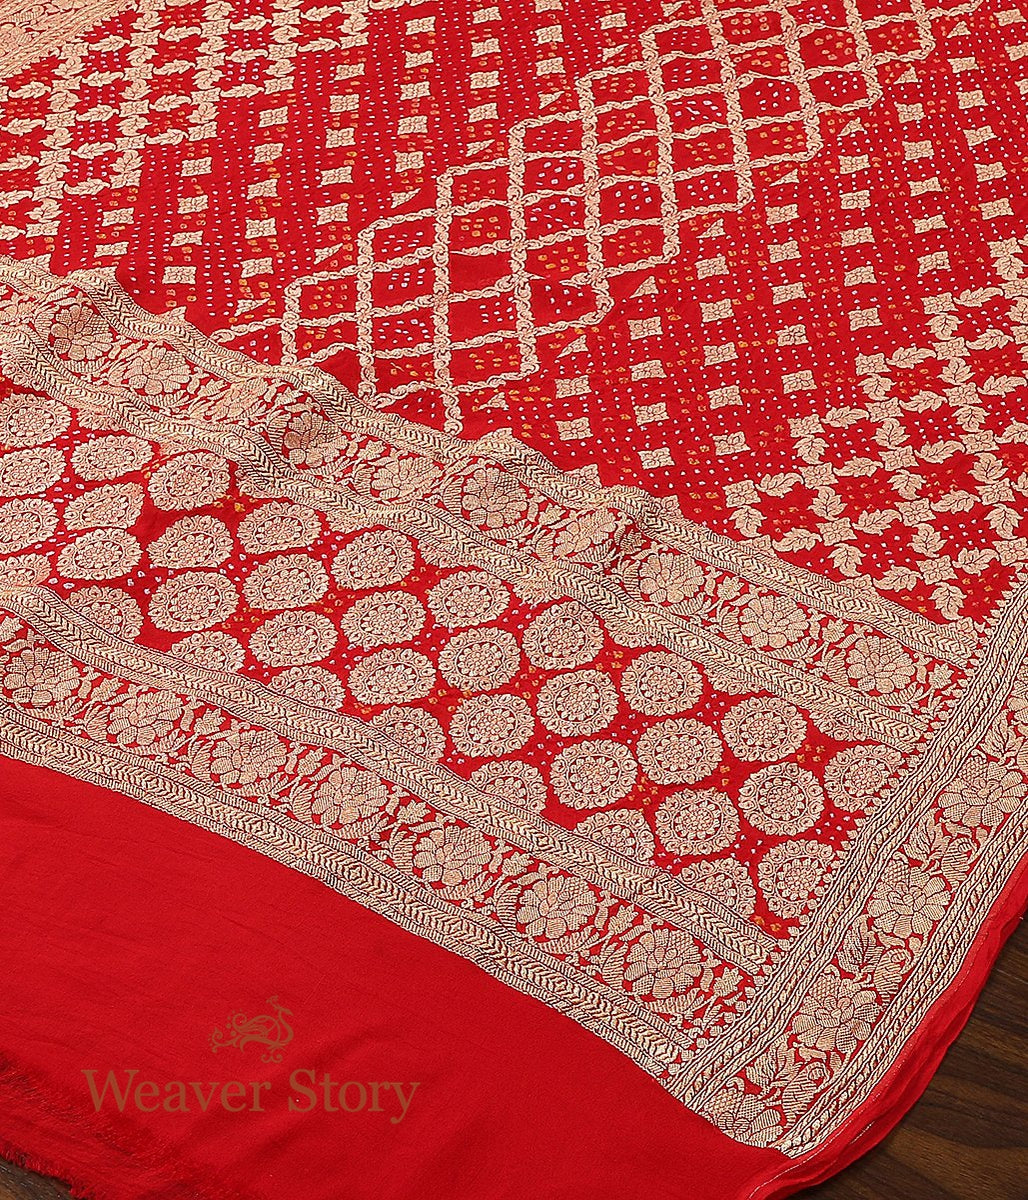 Handwoven Banarasi Bandhani Georgette Dupatta in Red